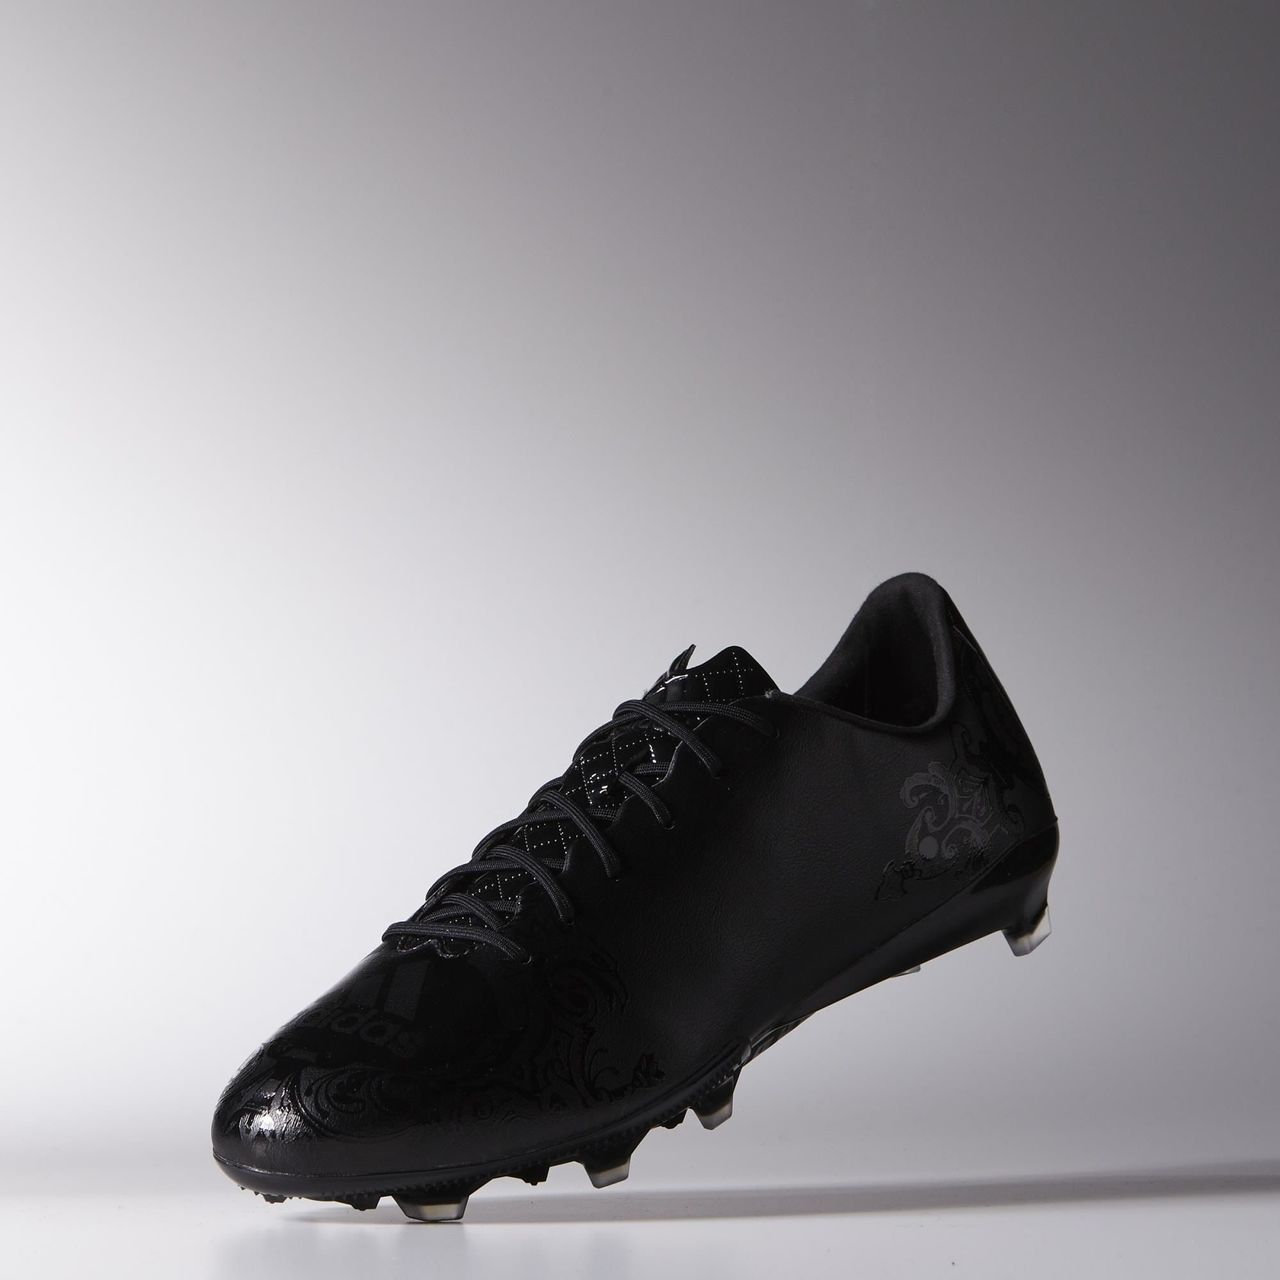 adidas f50 adizero black pack core black